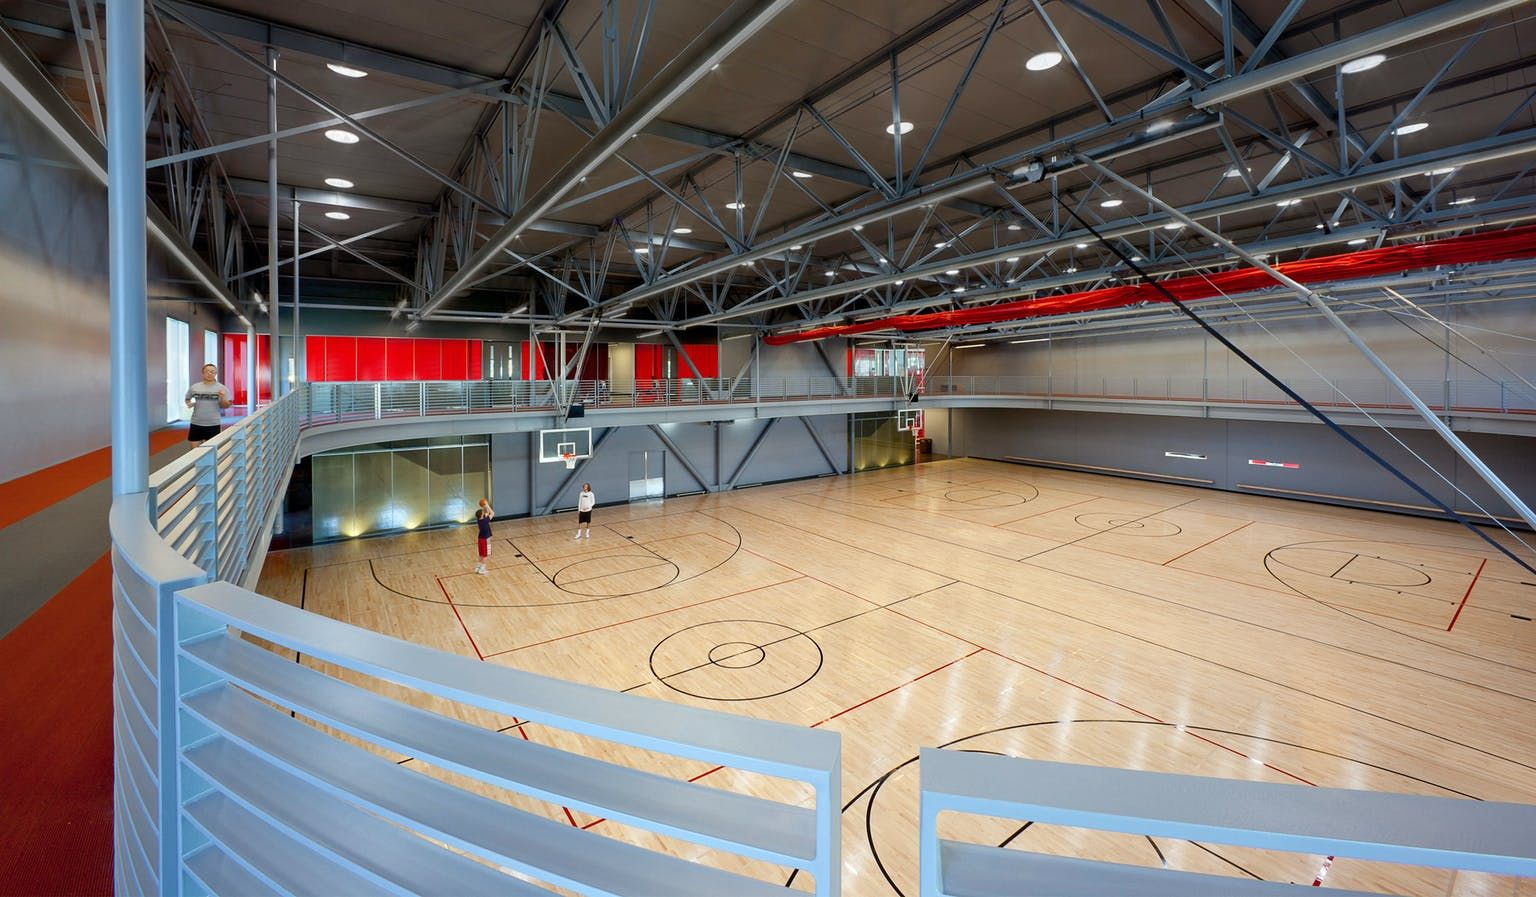 Pin By Dellaramy Vin On Green Building Certification Indoor Basketball Court Center Basketball Basketball